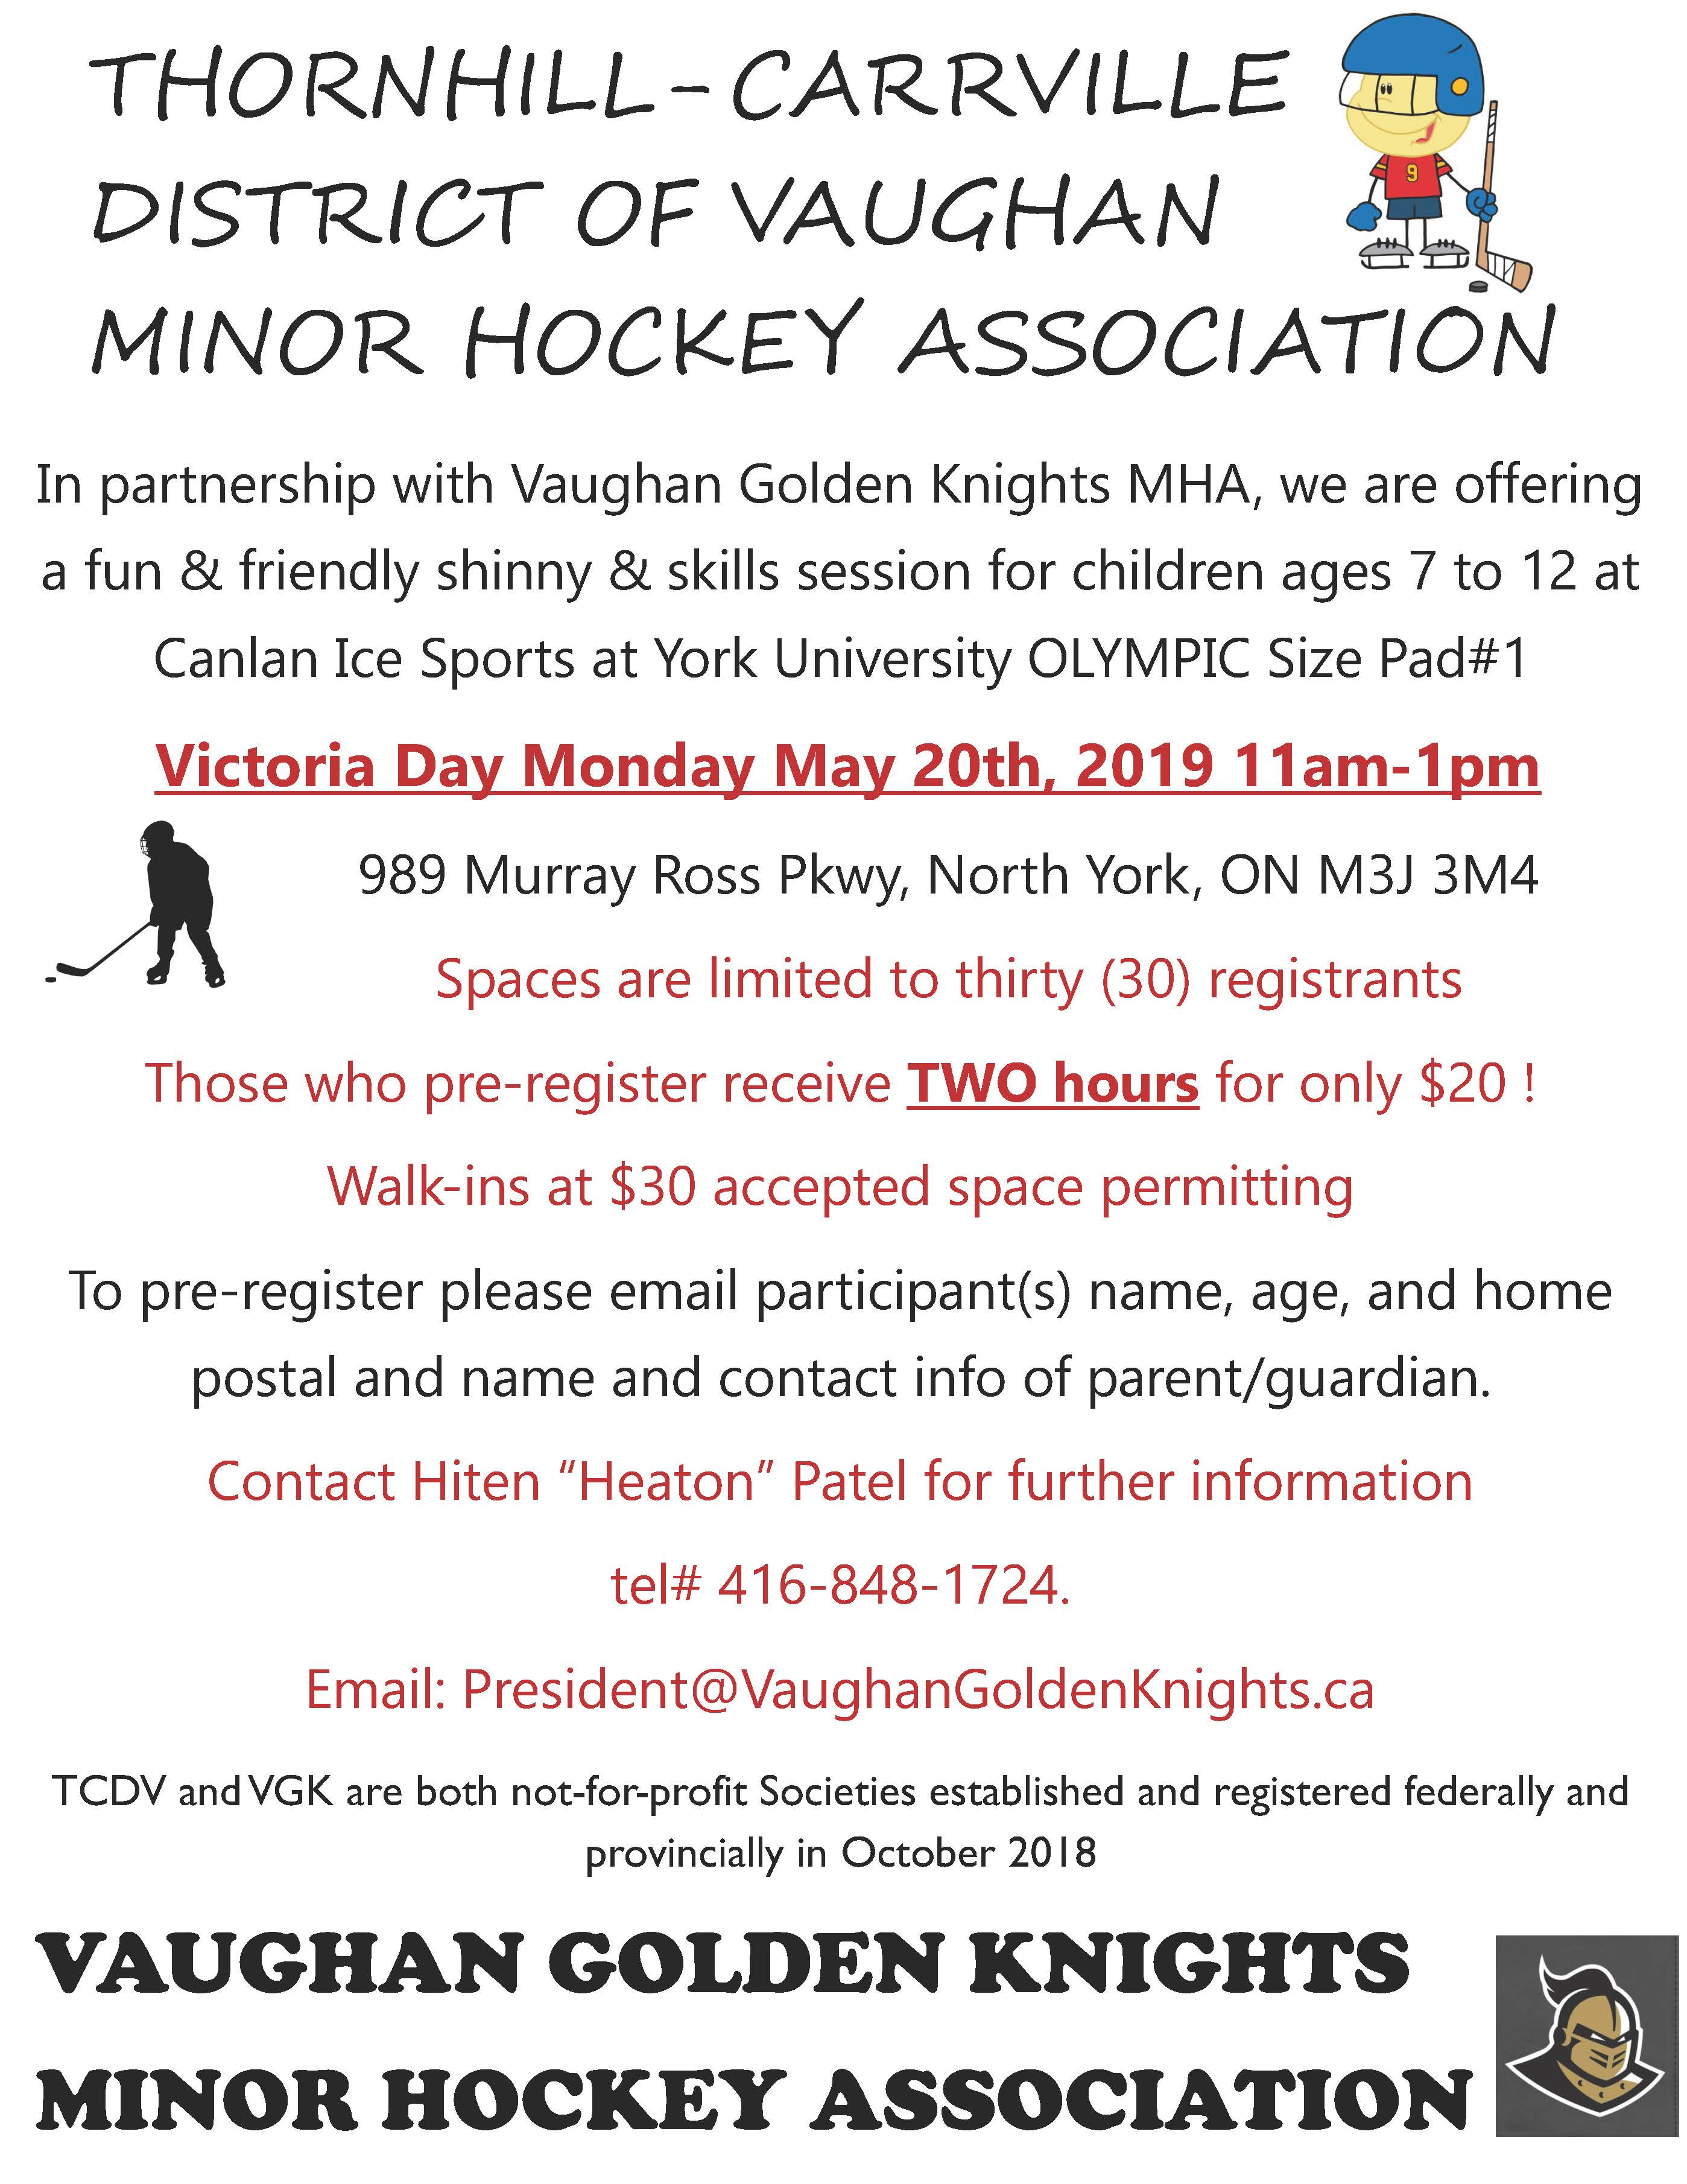 Looking for Something to do on Victoria Day? How about some shinny